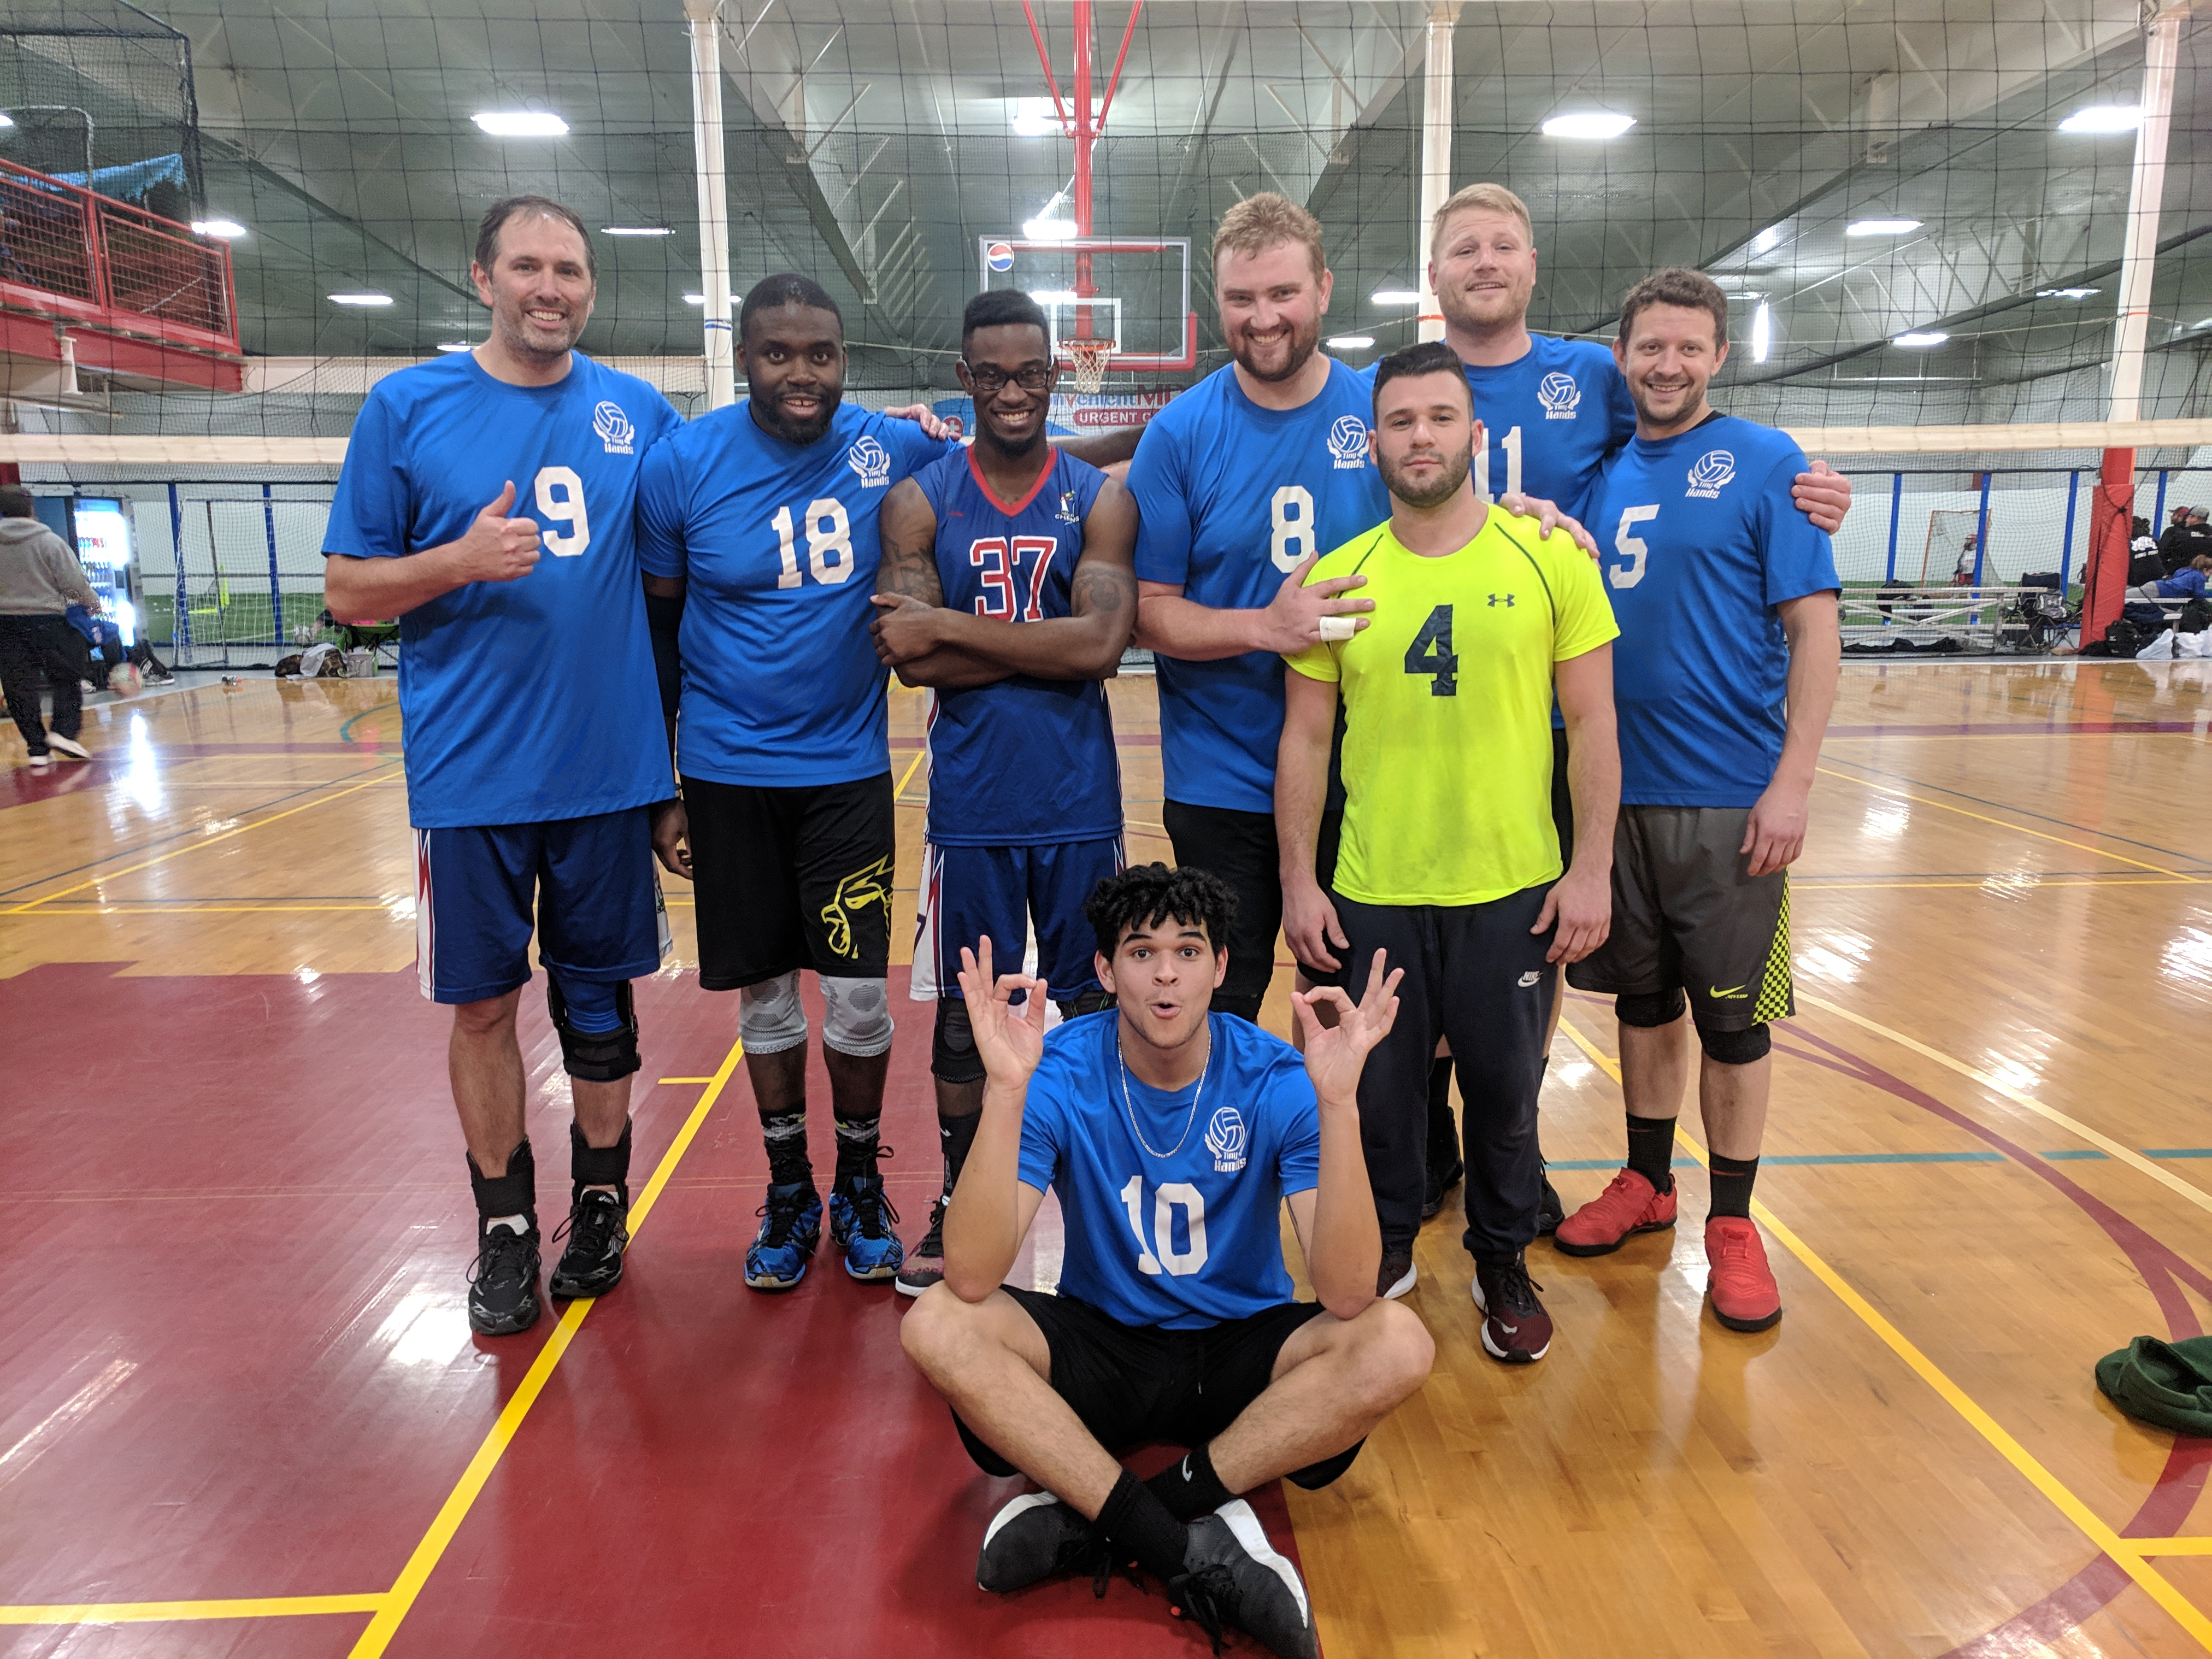 2/10/2019 MB Champions - Wootown Thunder Chickens